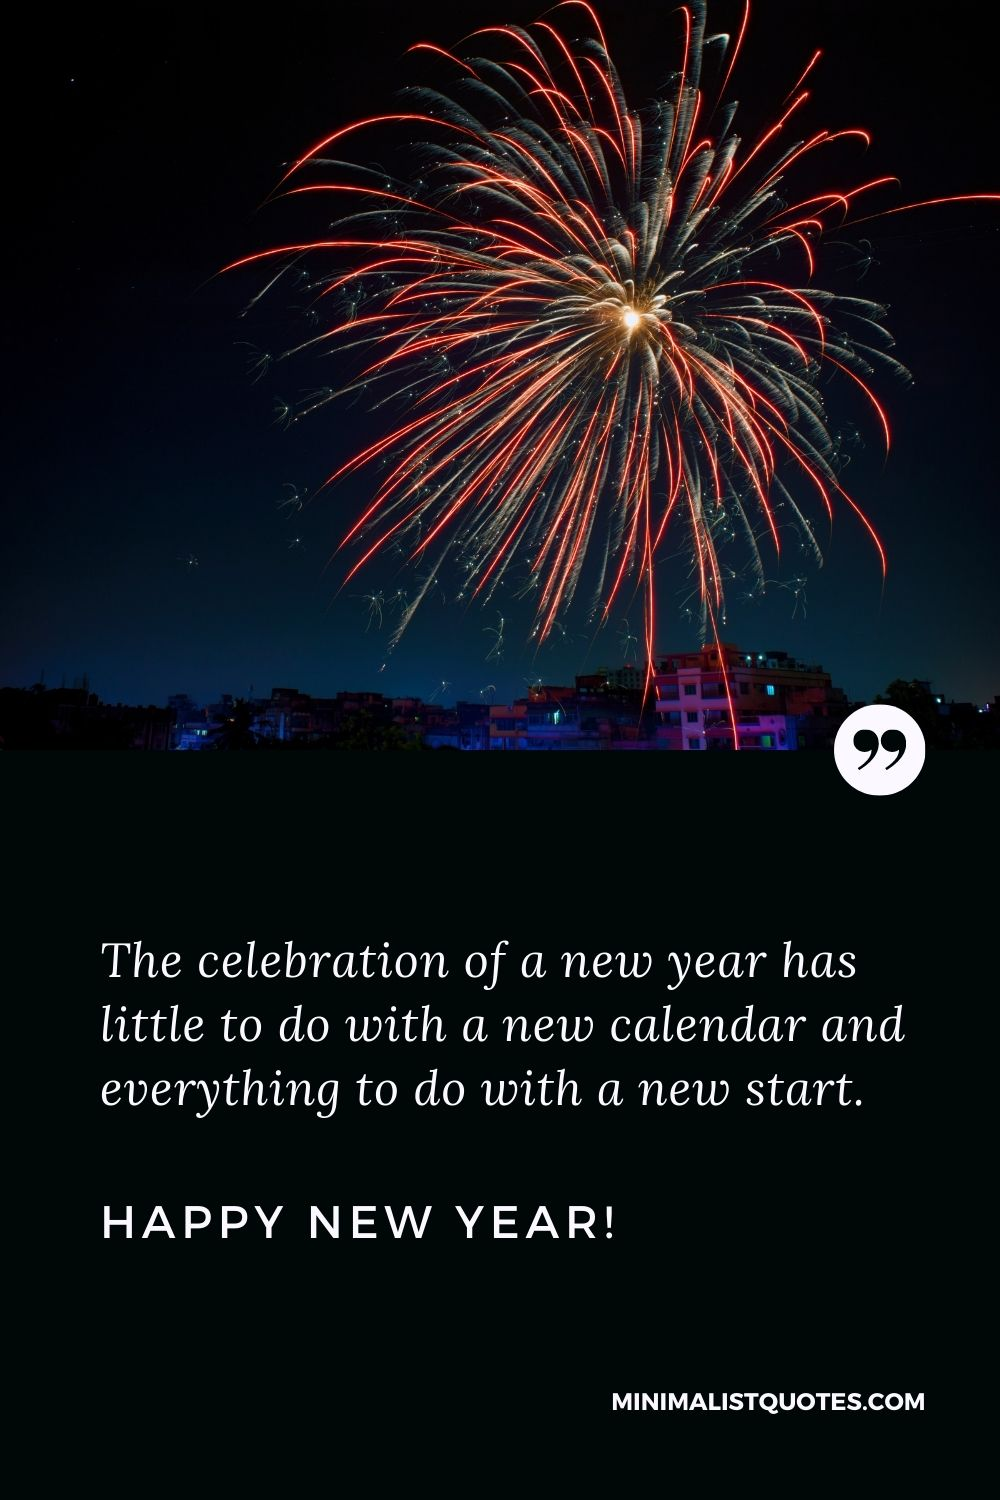 New year resolution quote: The celebration of a new year has little to do with a new calendar and everything to do with a new start. Happy New Year!